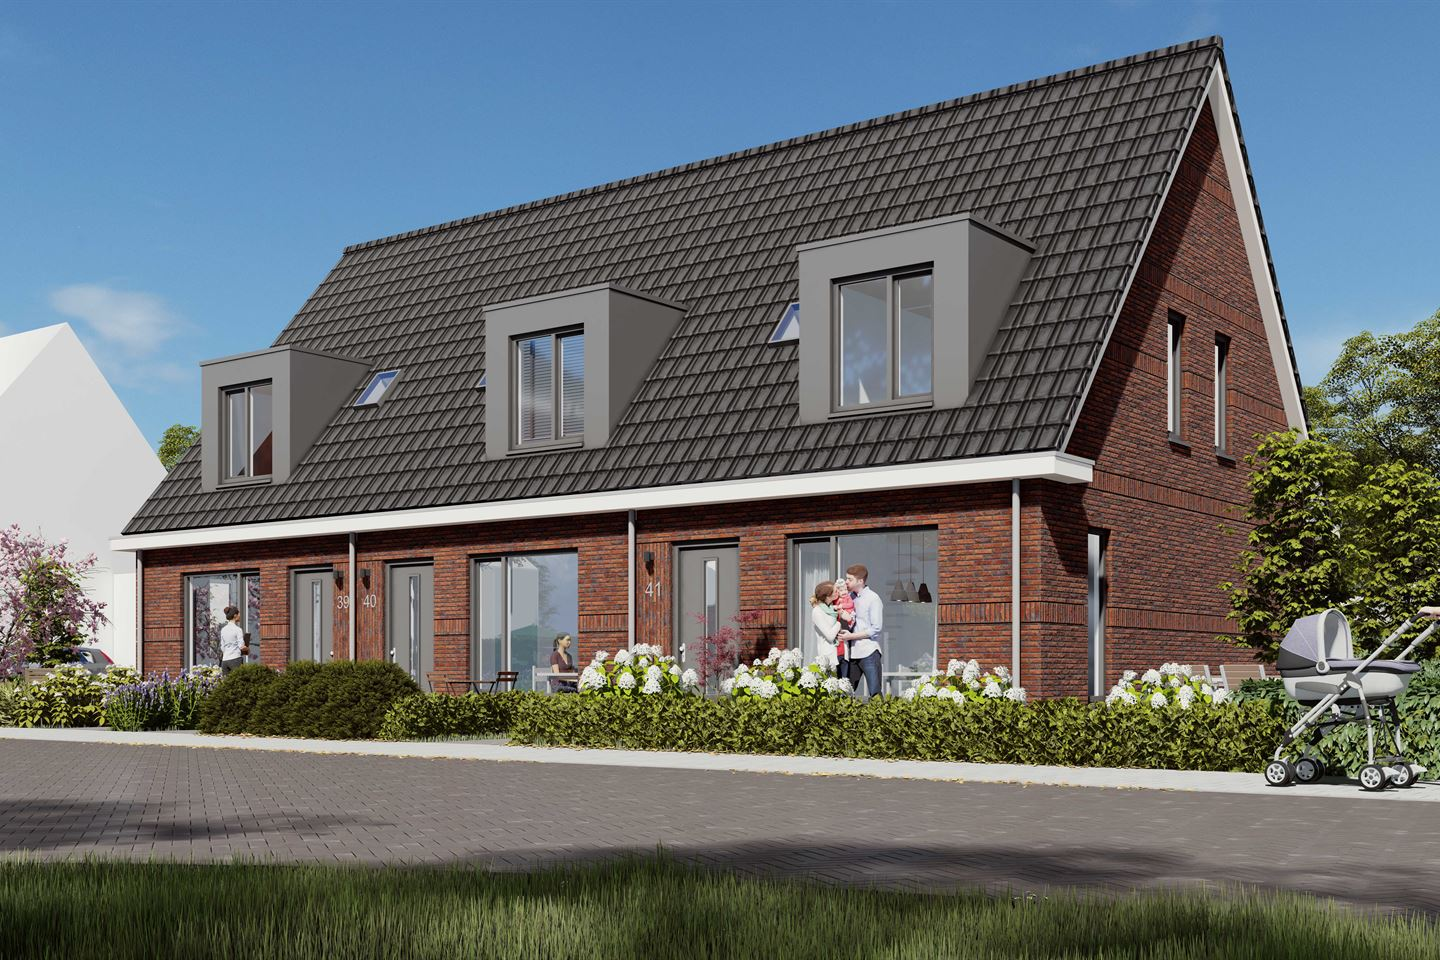 View photo 1 of Pingosingel Hoekwoning (Bouwnr. 39)